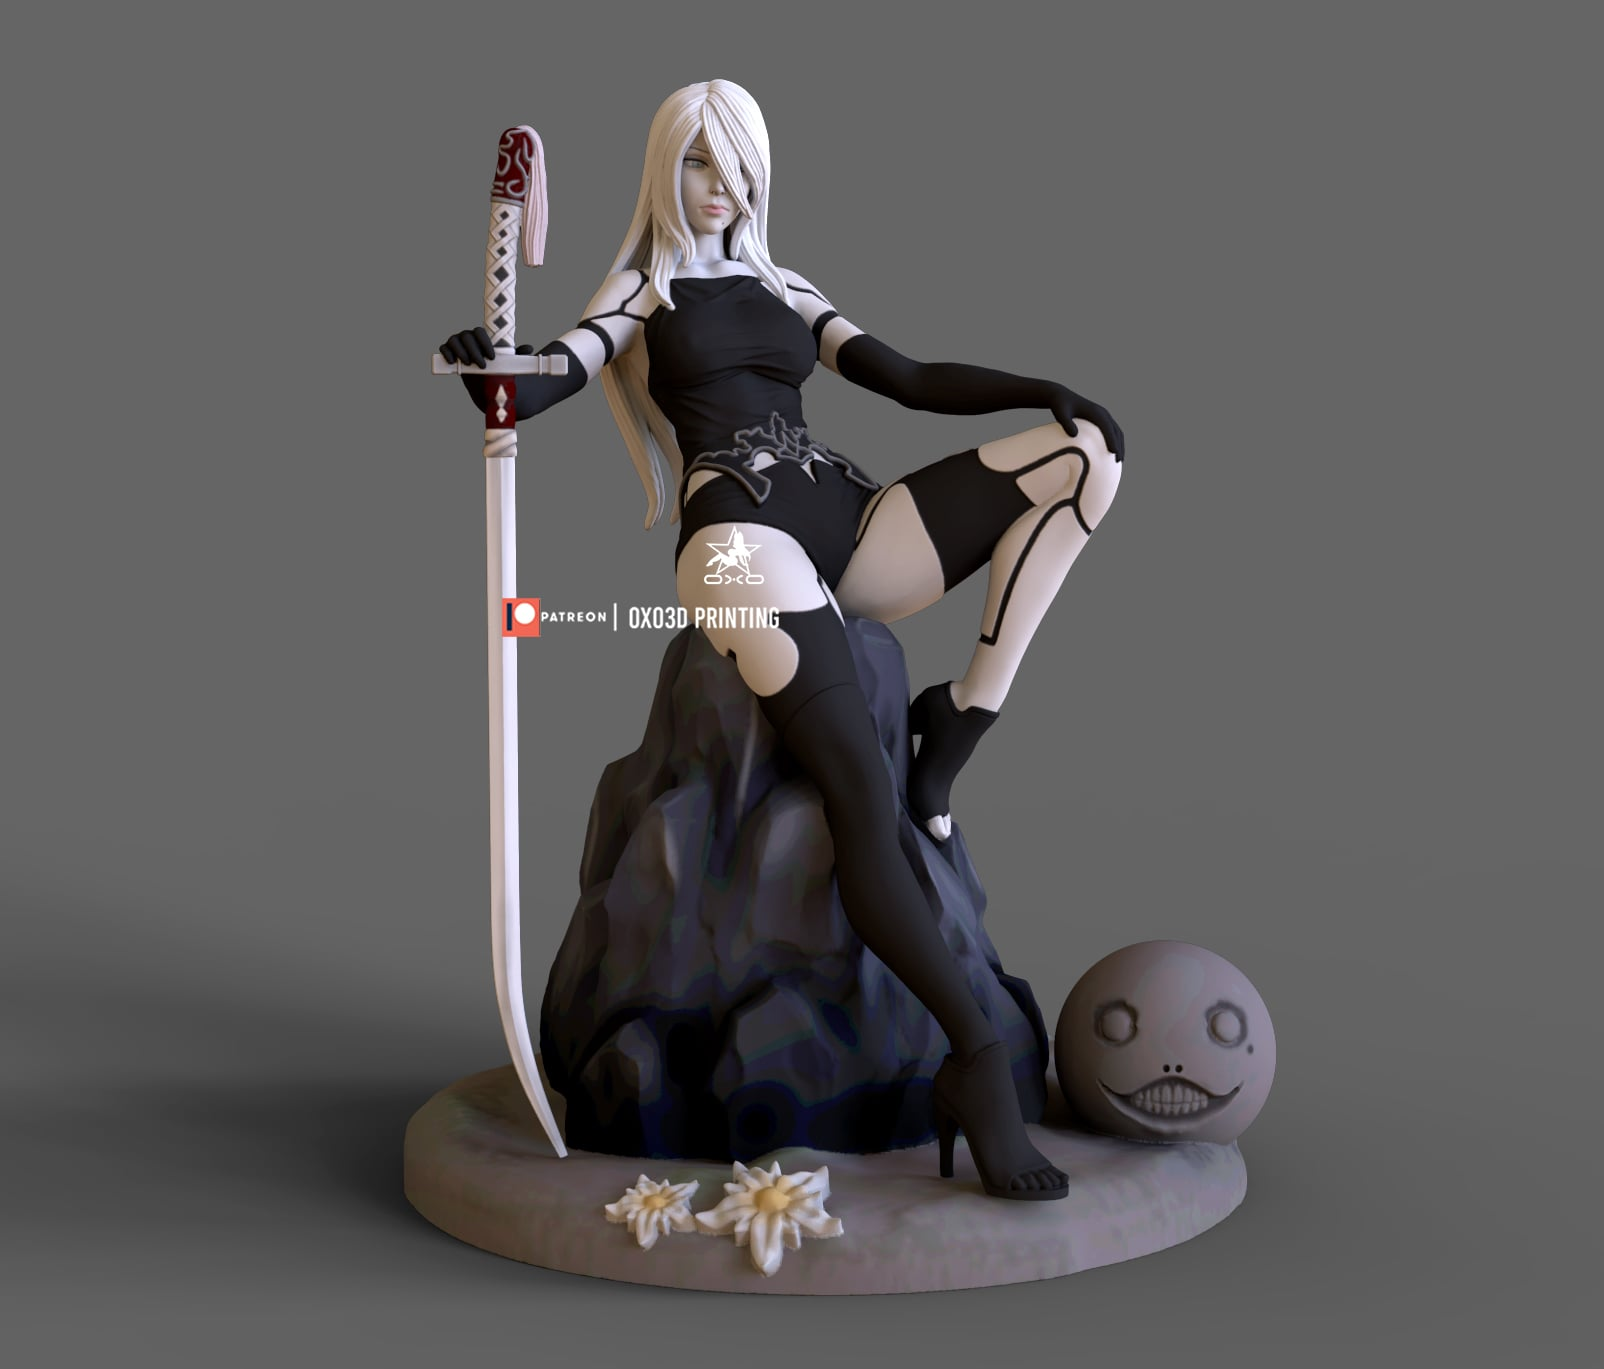 Nier Automata A2 3d print model from OXO3D Printing